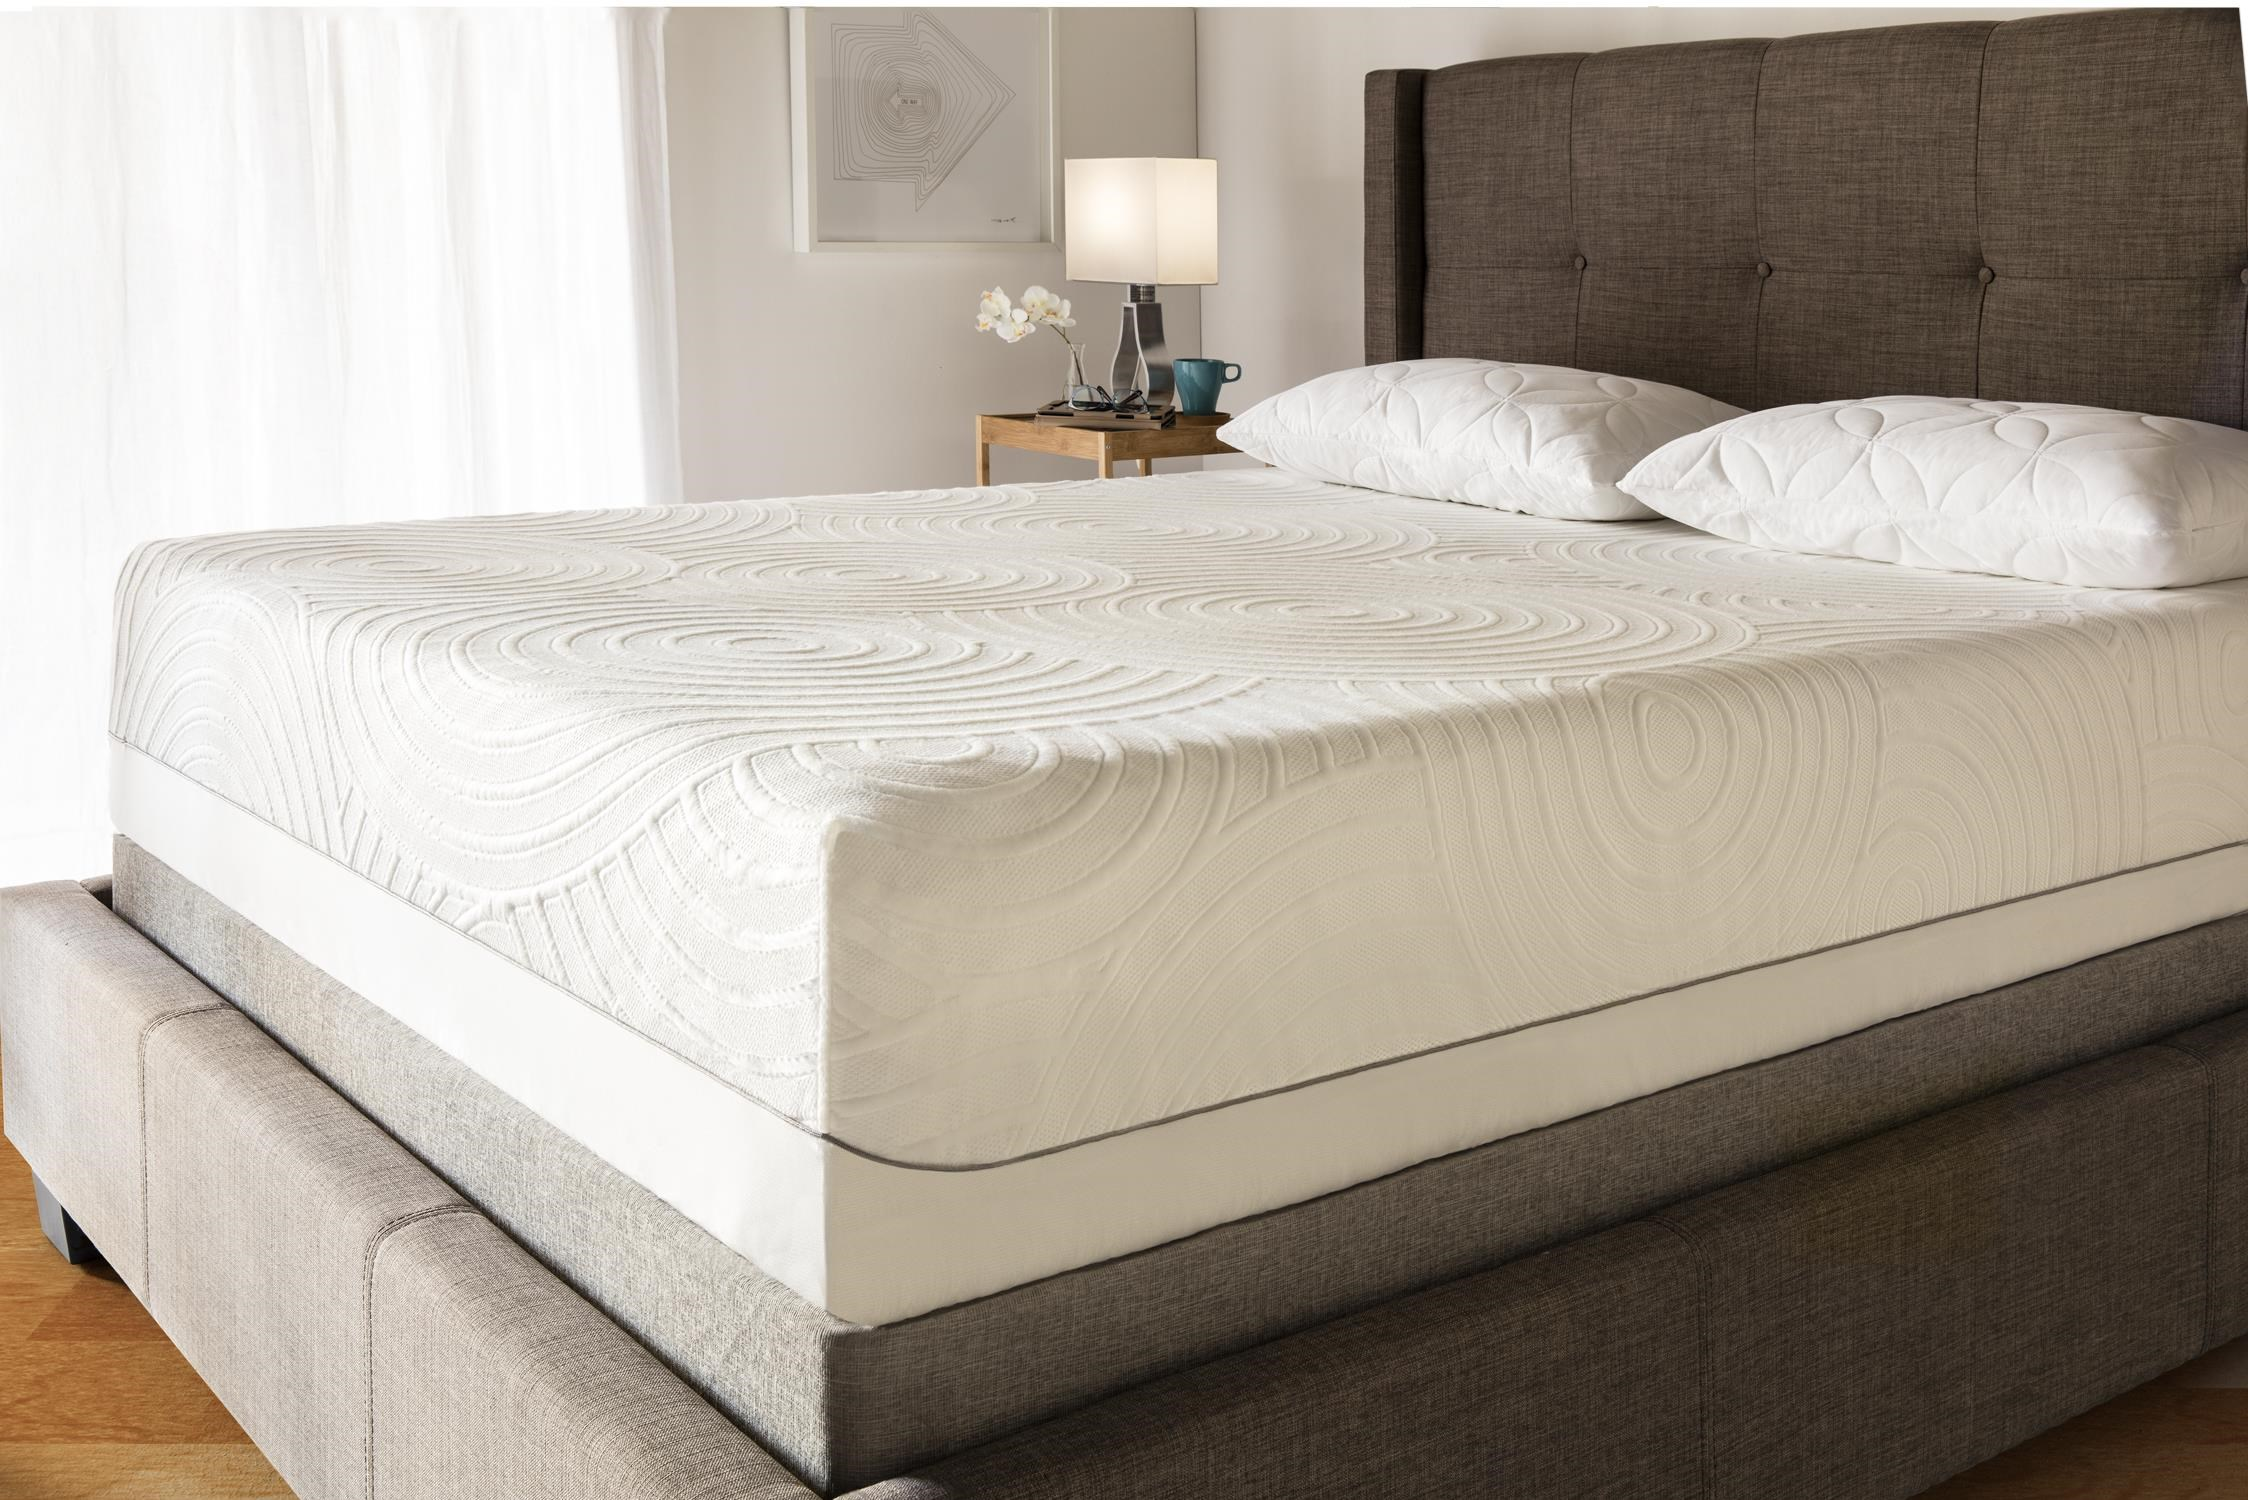 double for frame cost king sets electric tempur bedroom luxe bed pedic and mattresses mattress cloud adjustable tempurpedic beds size